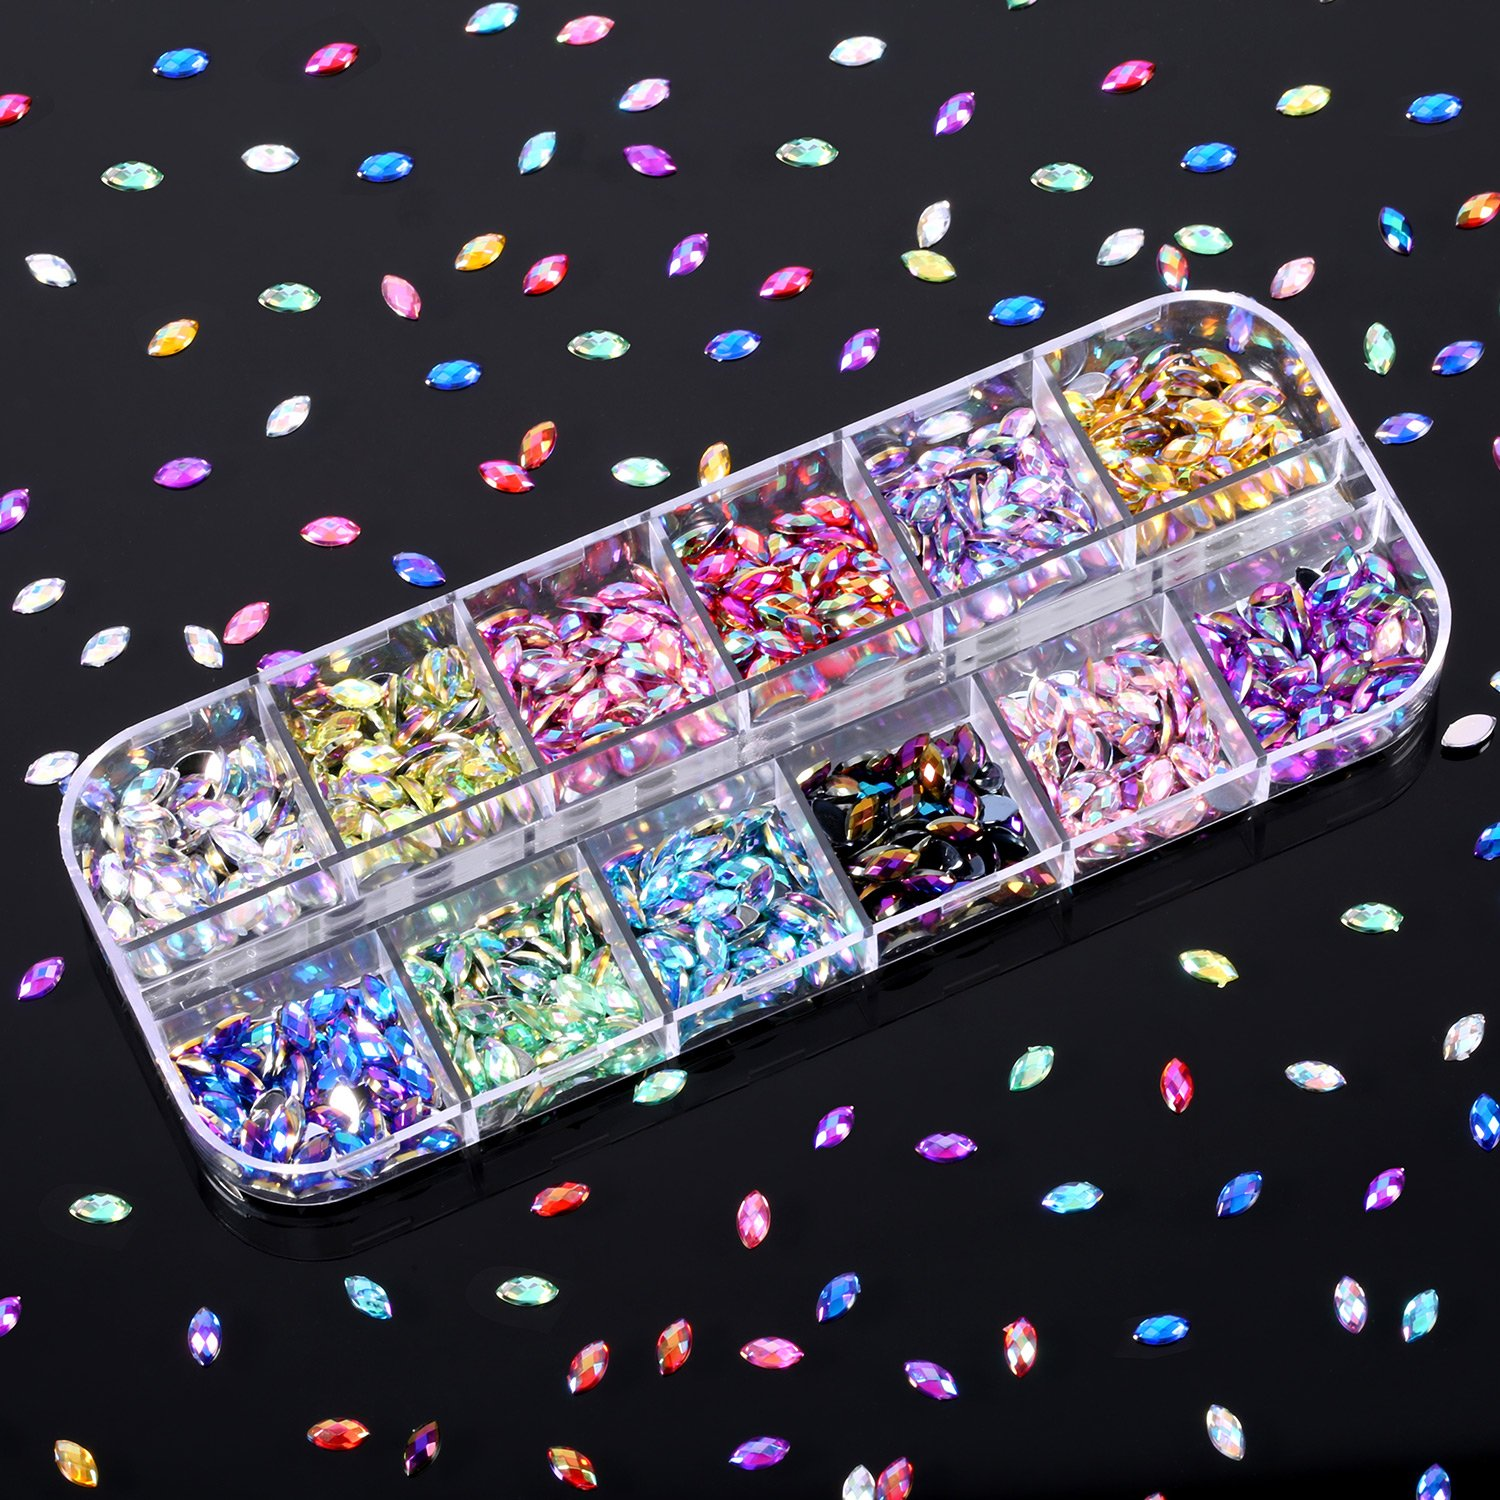 Review about TecUnite 1200 Pieces 12 Colors Shiny Nail Art Rhinestones Flat Back Nail Gems Decorations Supplies with Box